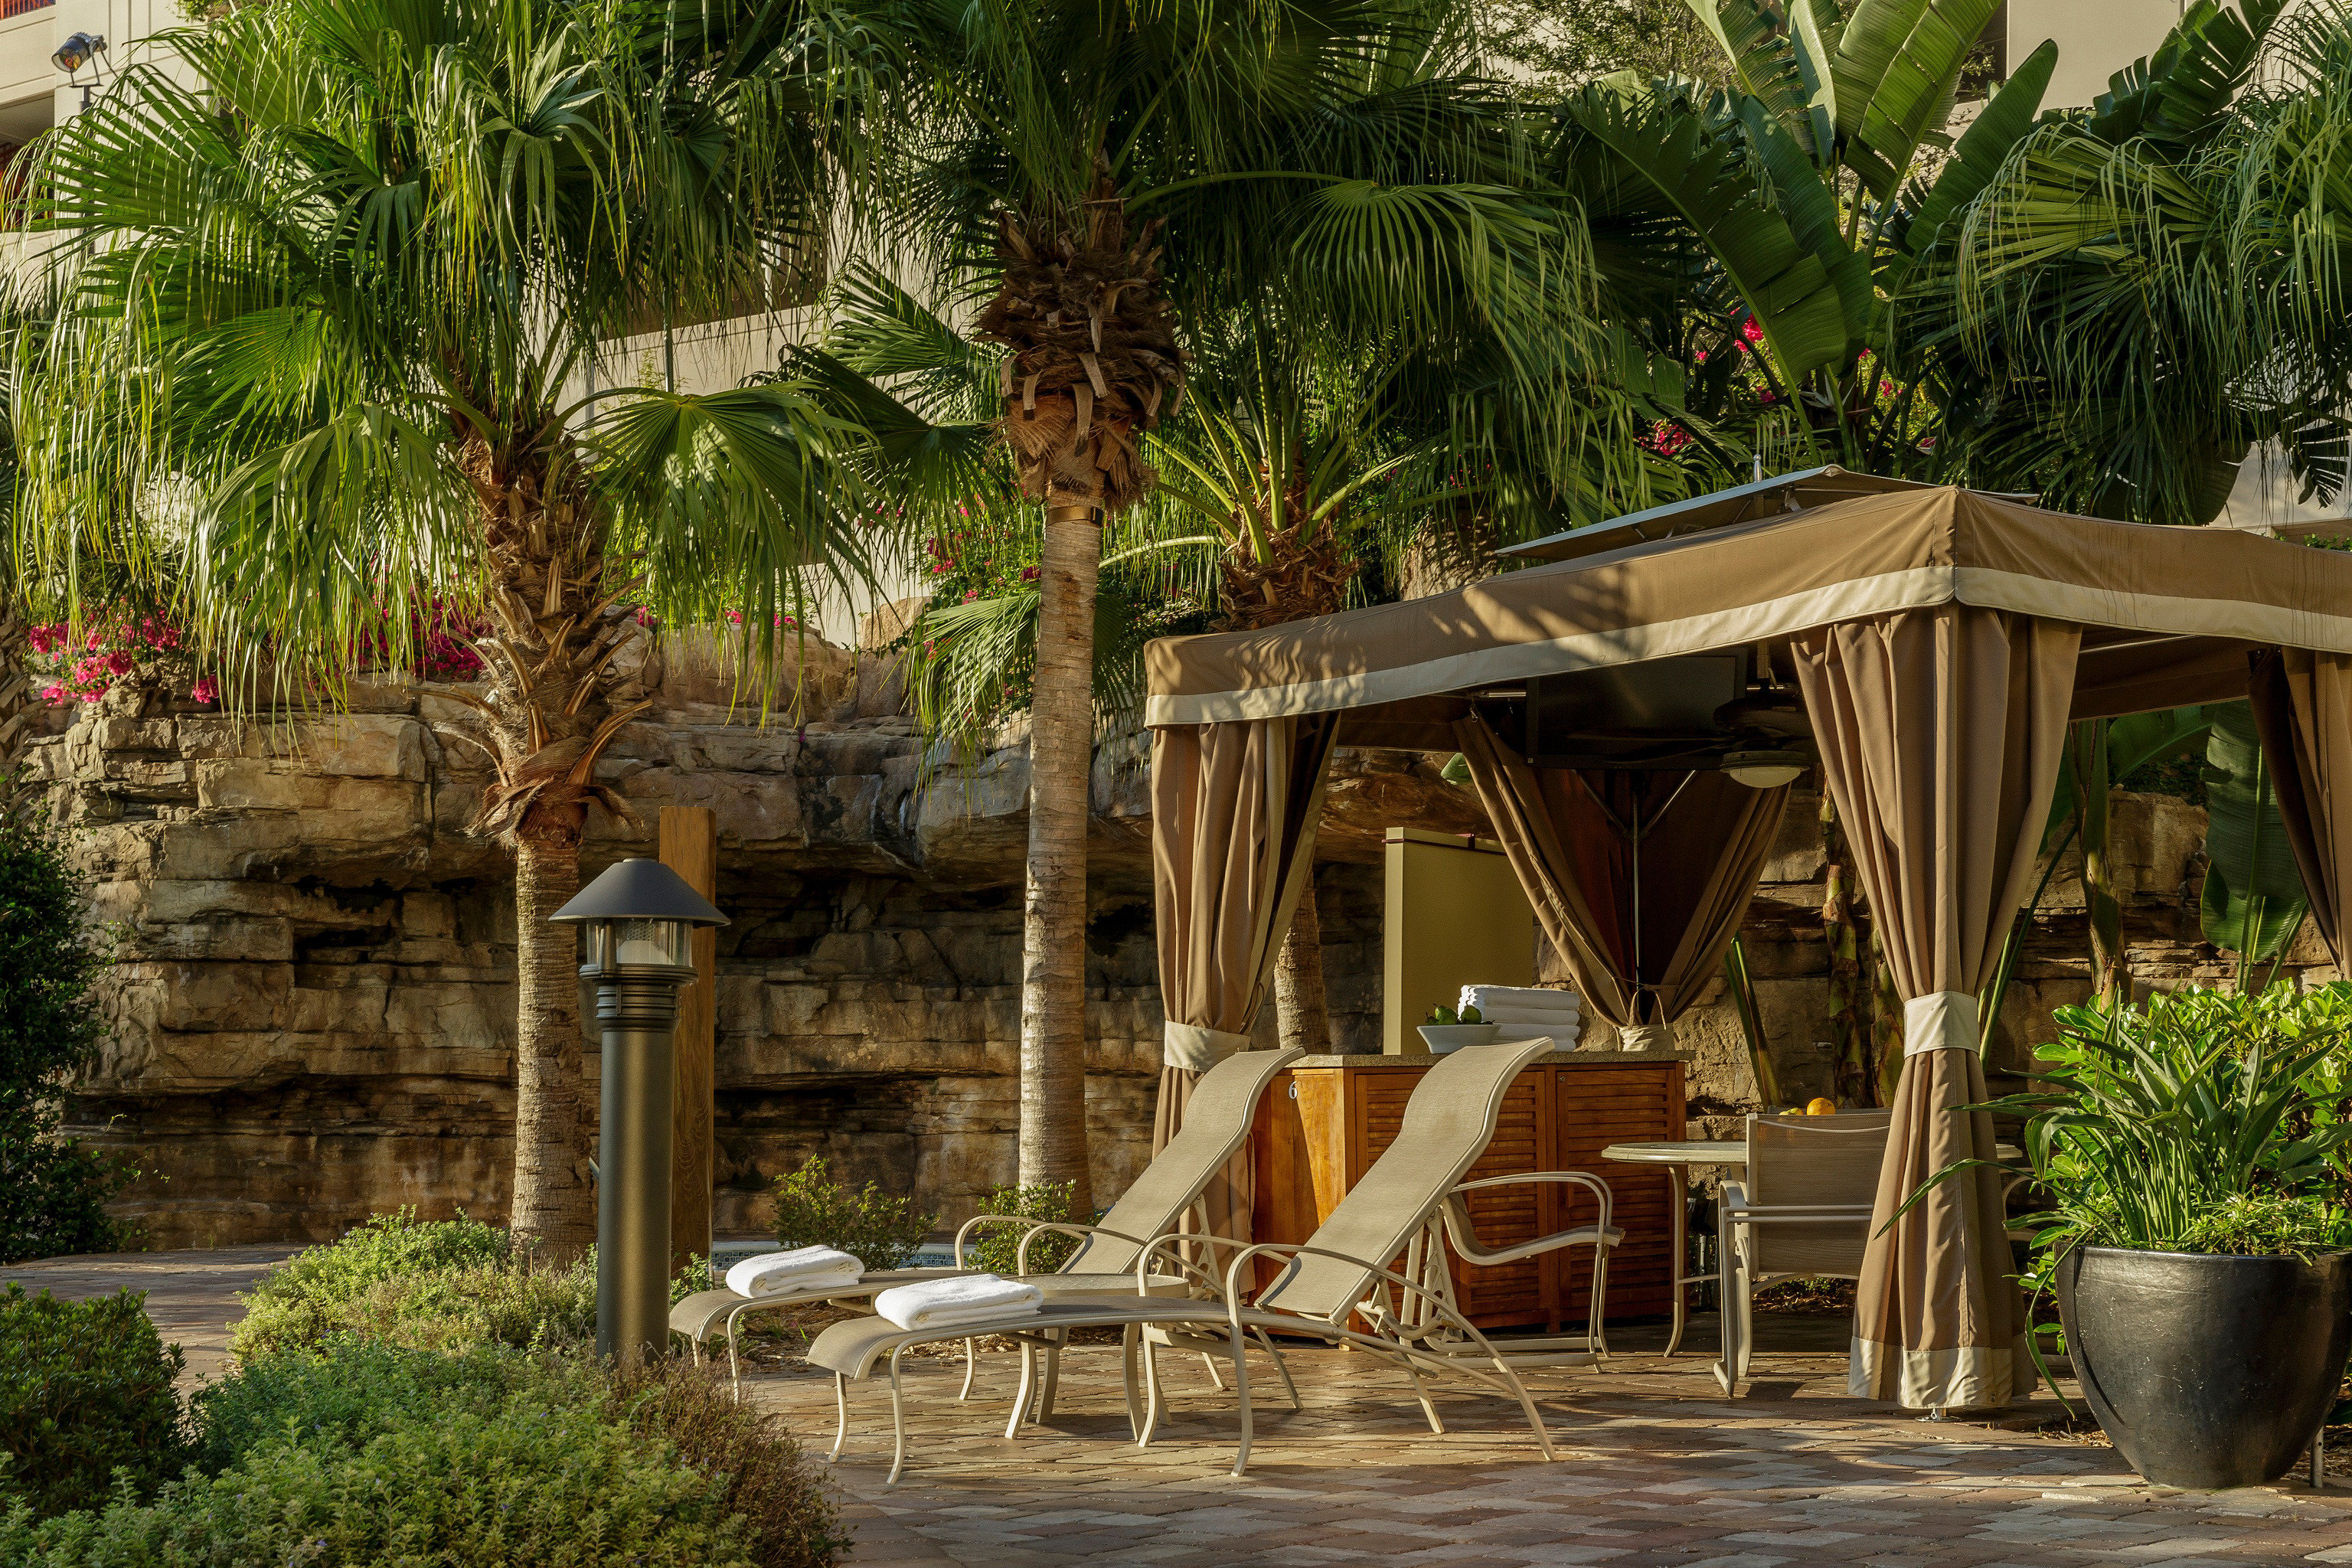 Buildings City Exterior Lounge Pool tree Resort building palm house arecales Jungle home backyard Garden restaurant Courtyard tropics outdoor structure plant